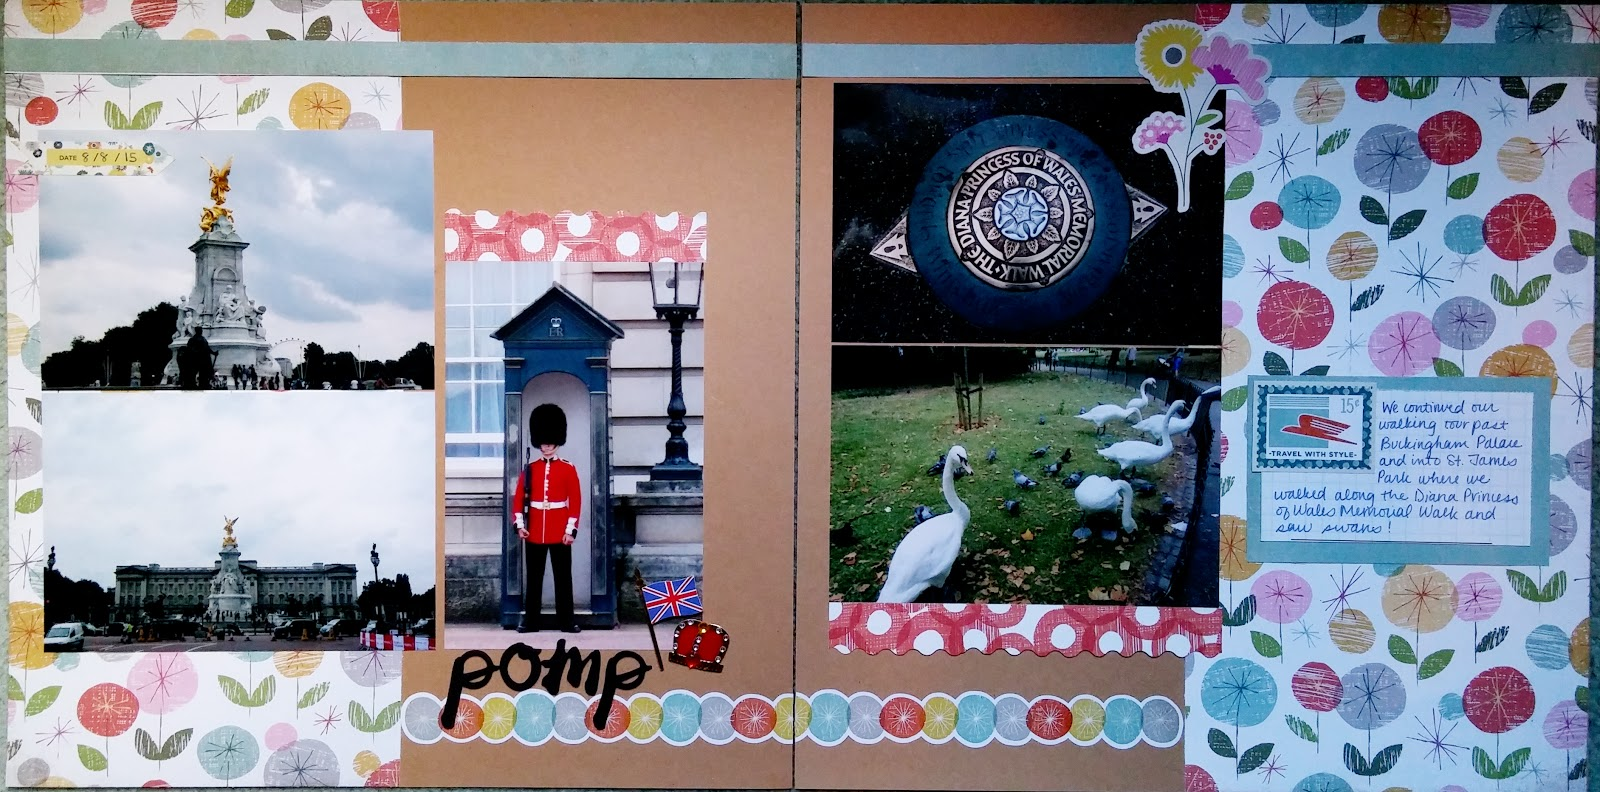 Summer vacation scrapbook ideas - Today I Am Sharing More Scrapbook Layouts From Our Summer Vacation Album We Re Still On Day 1 Of Our Time In London We Continued Our On Foot Sightseeing